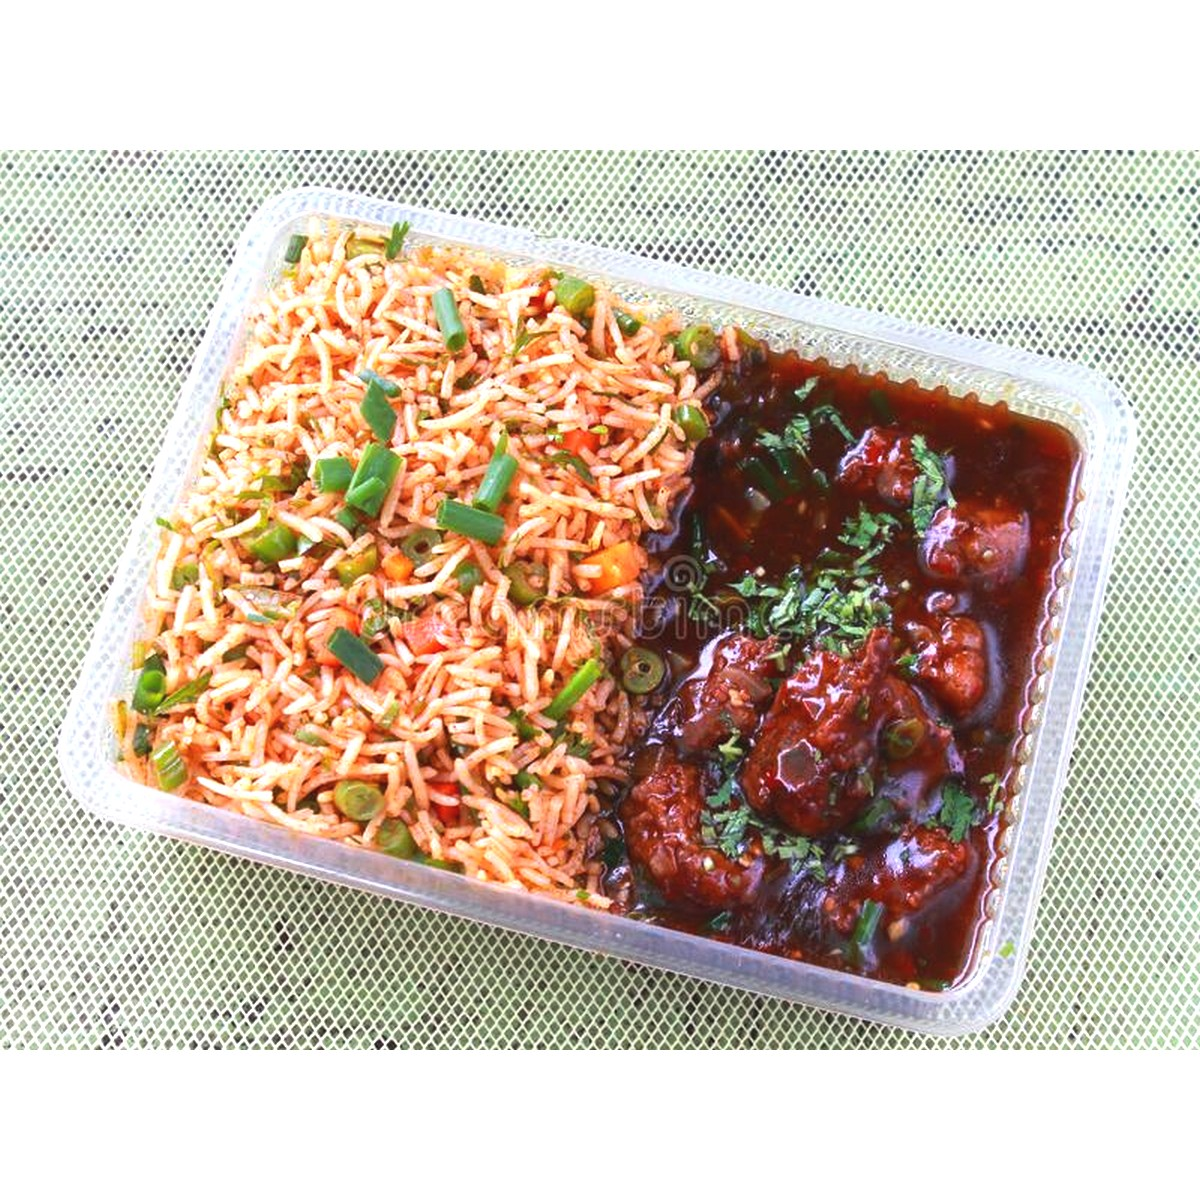 KYANDI MEALS FOR ONE VEG